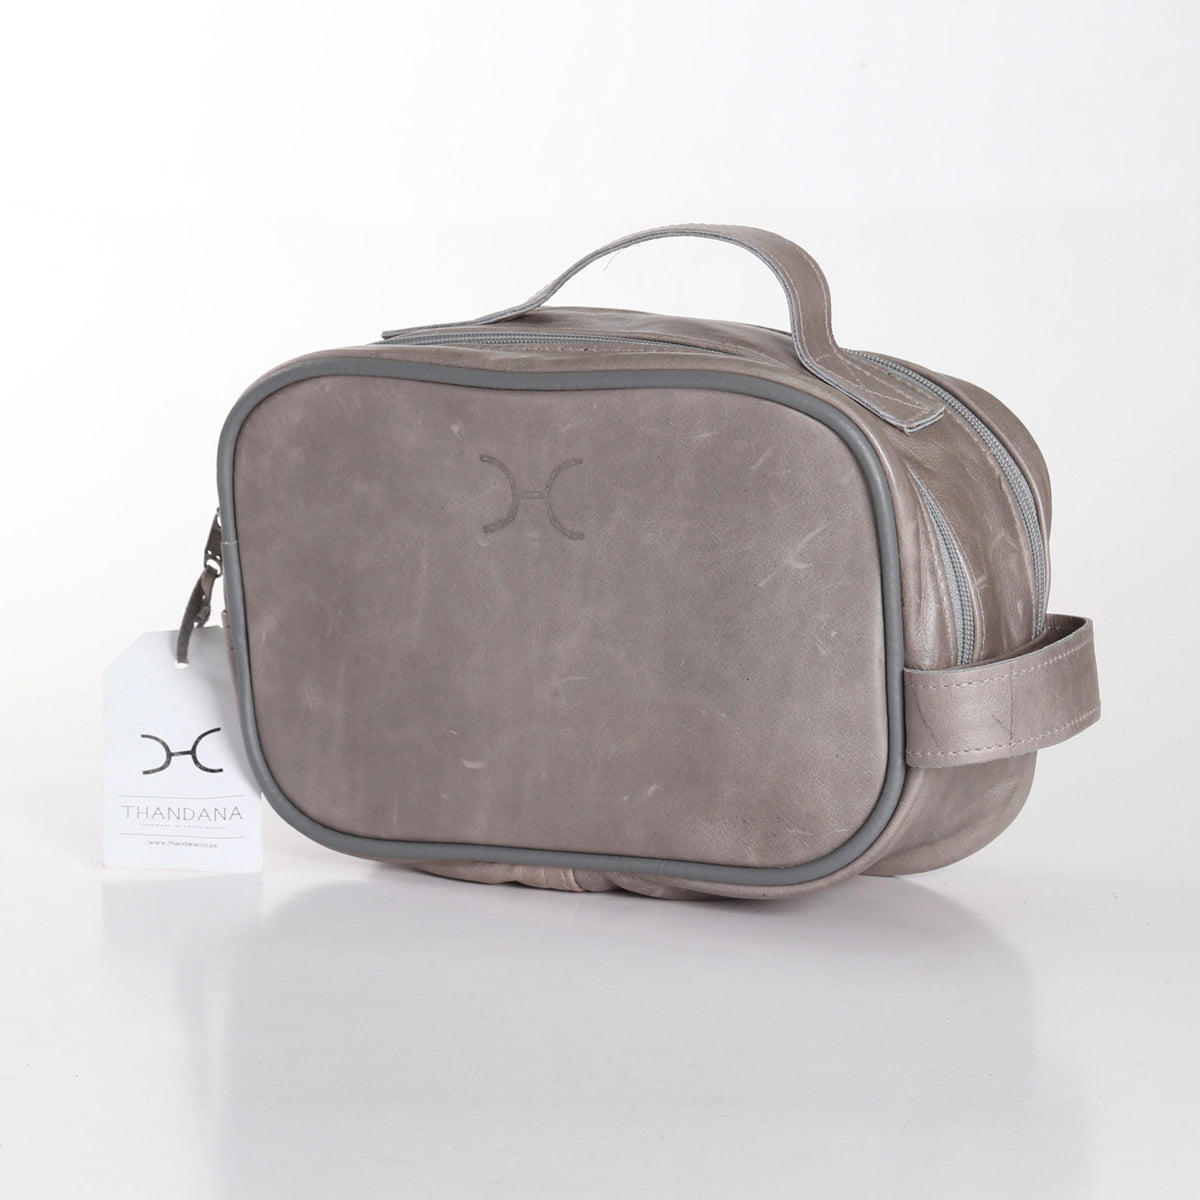 Thandana Vanity Bag - Grey - Zufrique Boutique